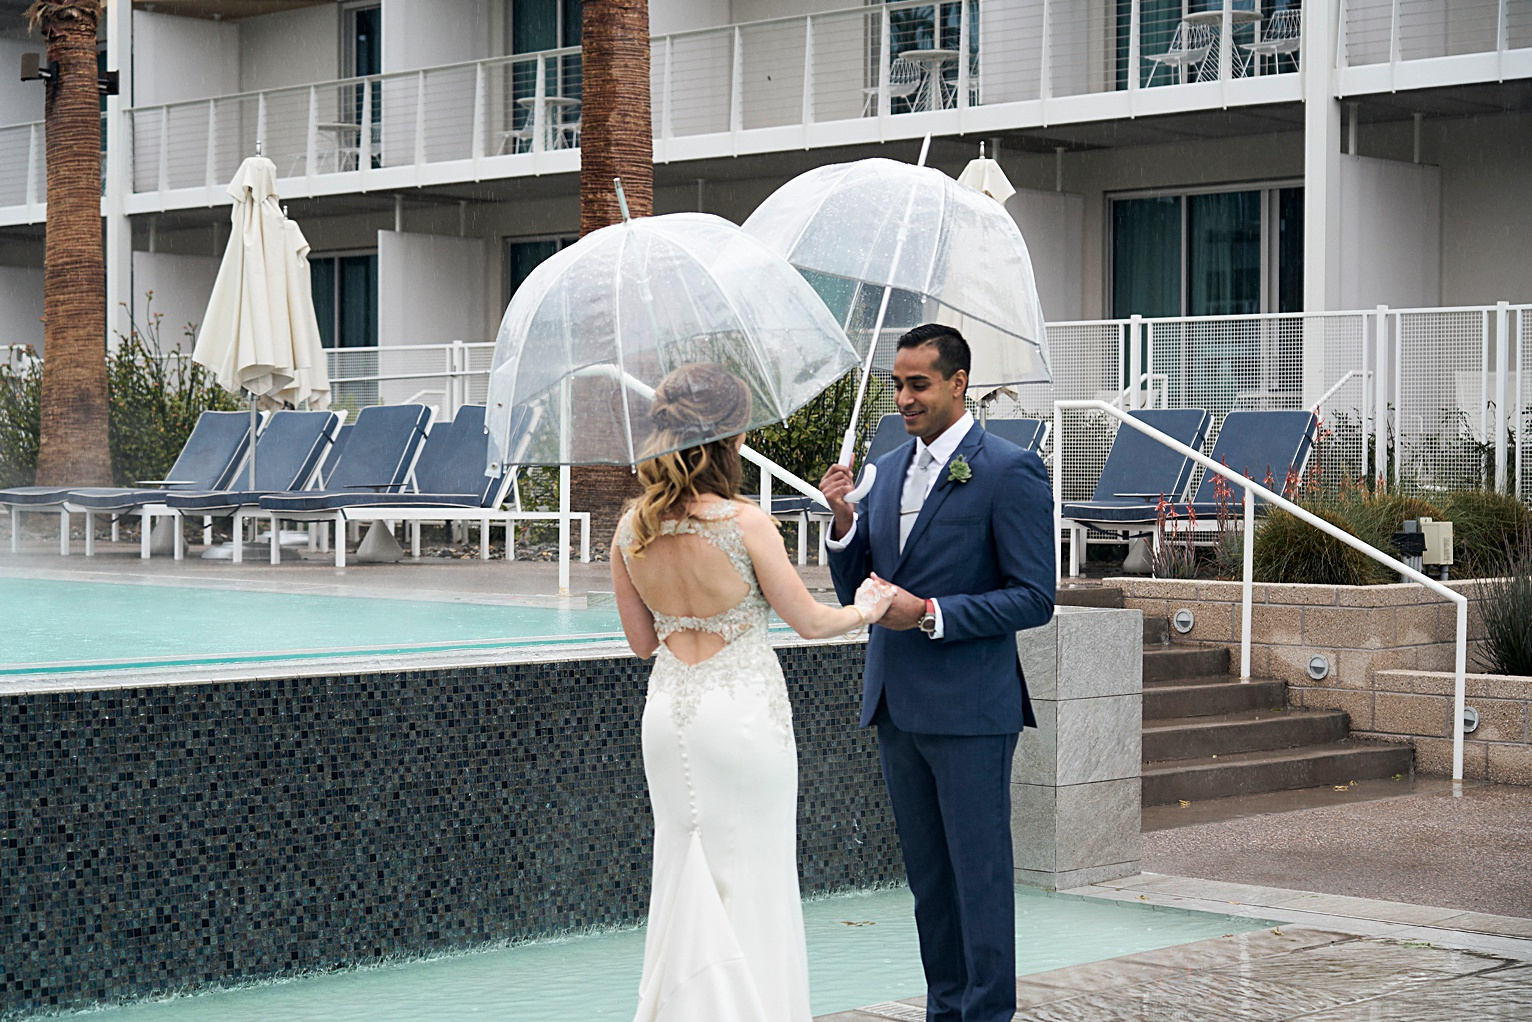 first look on wedding day with umbrella in the rain